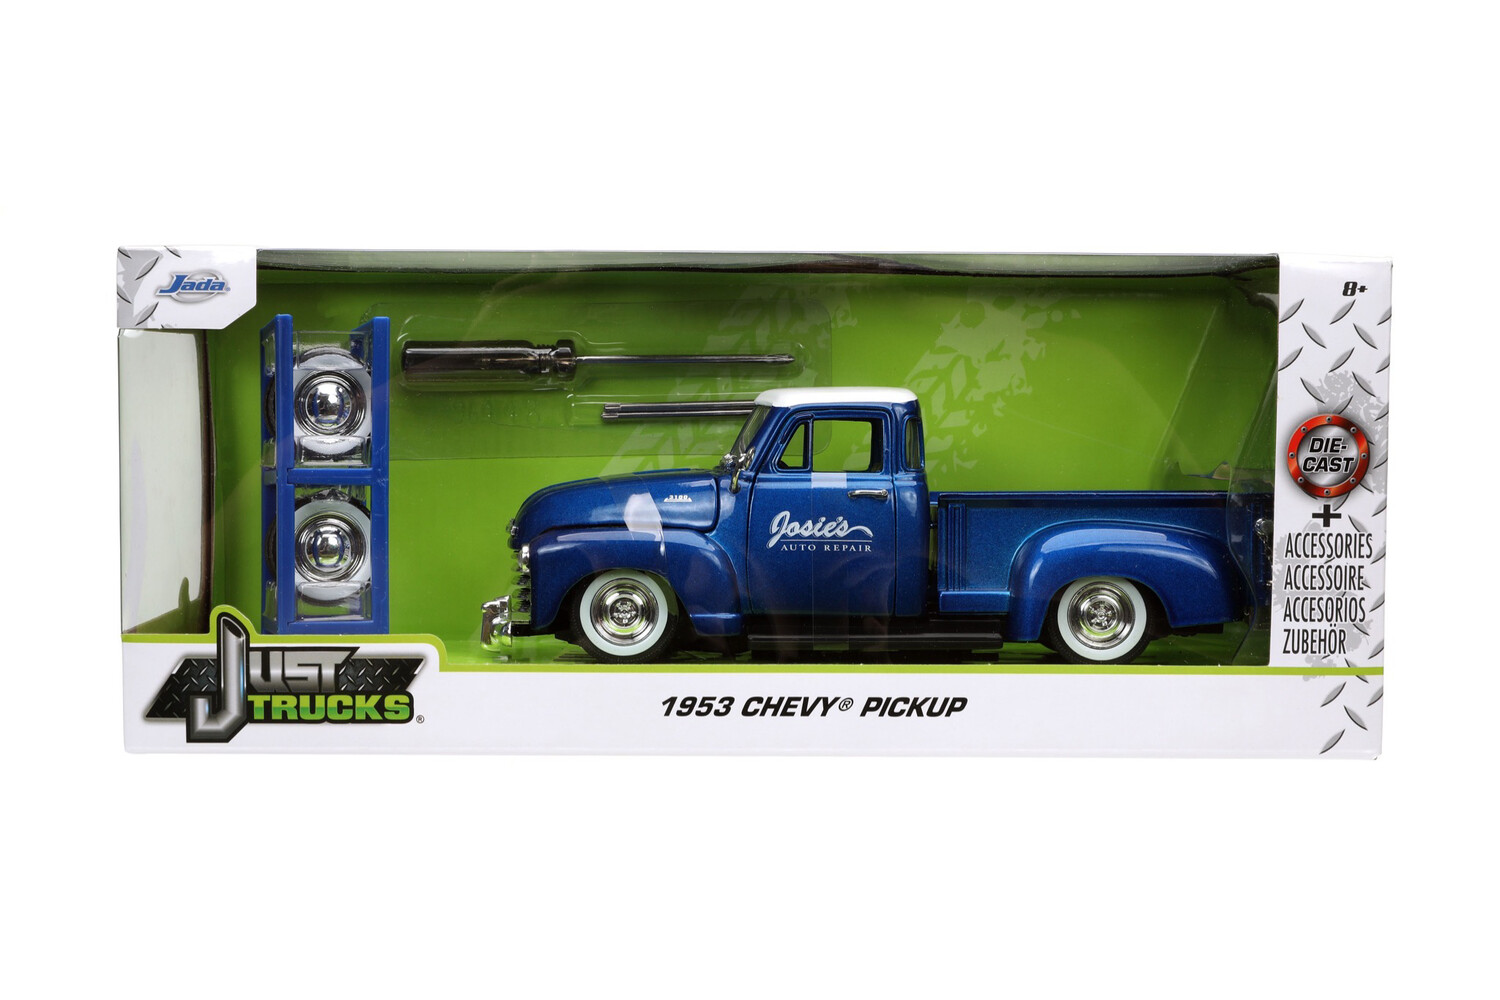 1953 Chevy Pick up rines extra